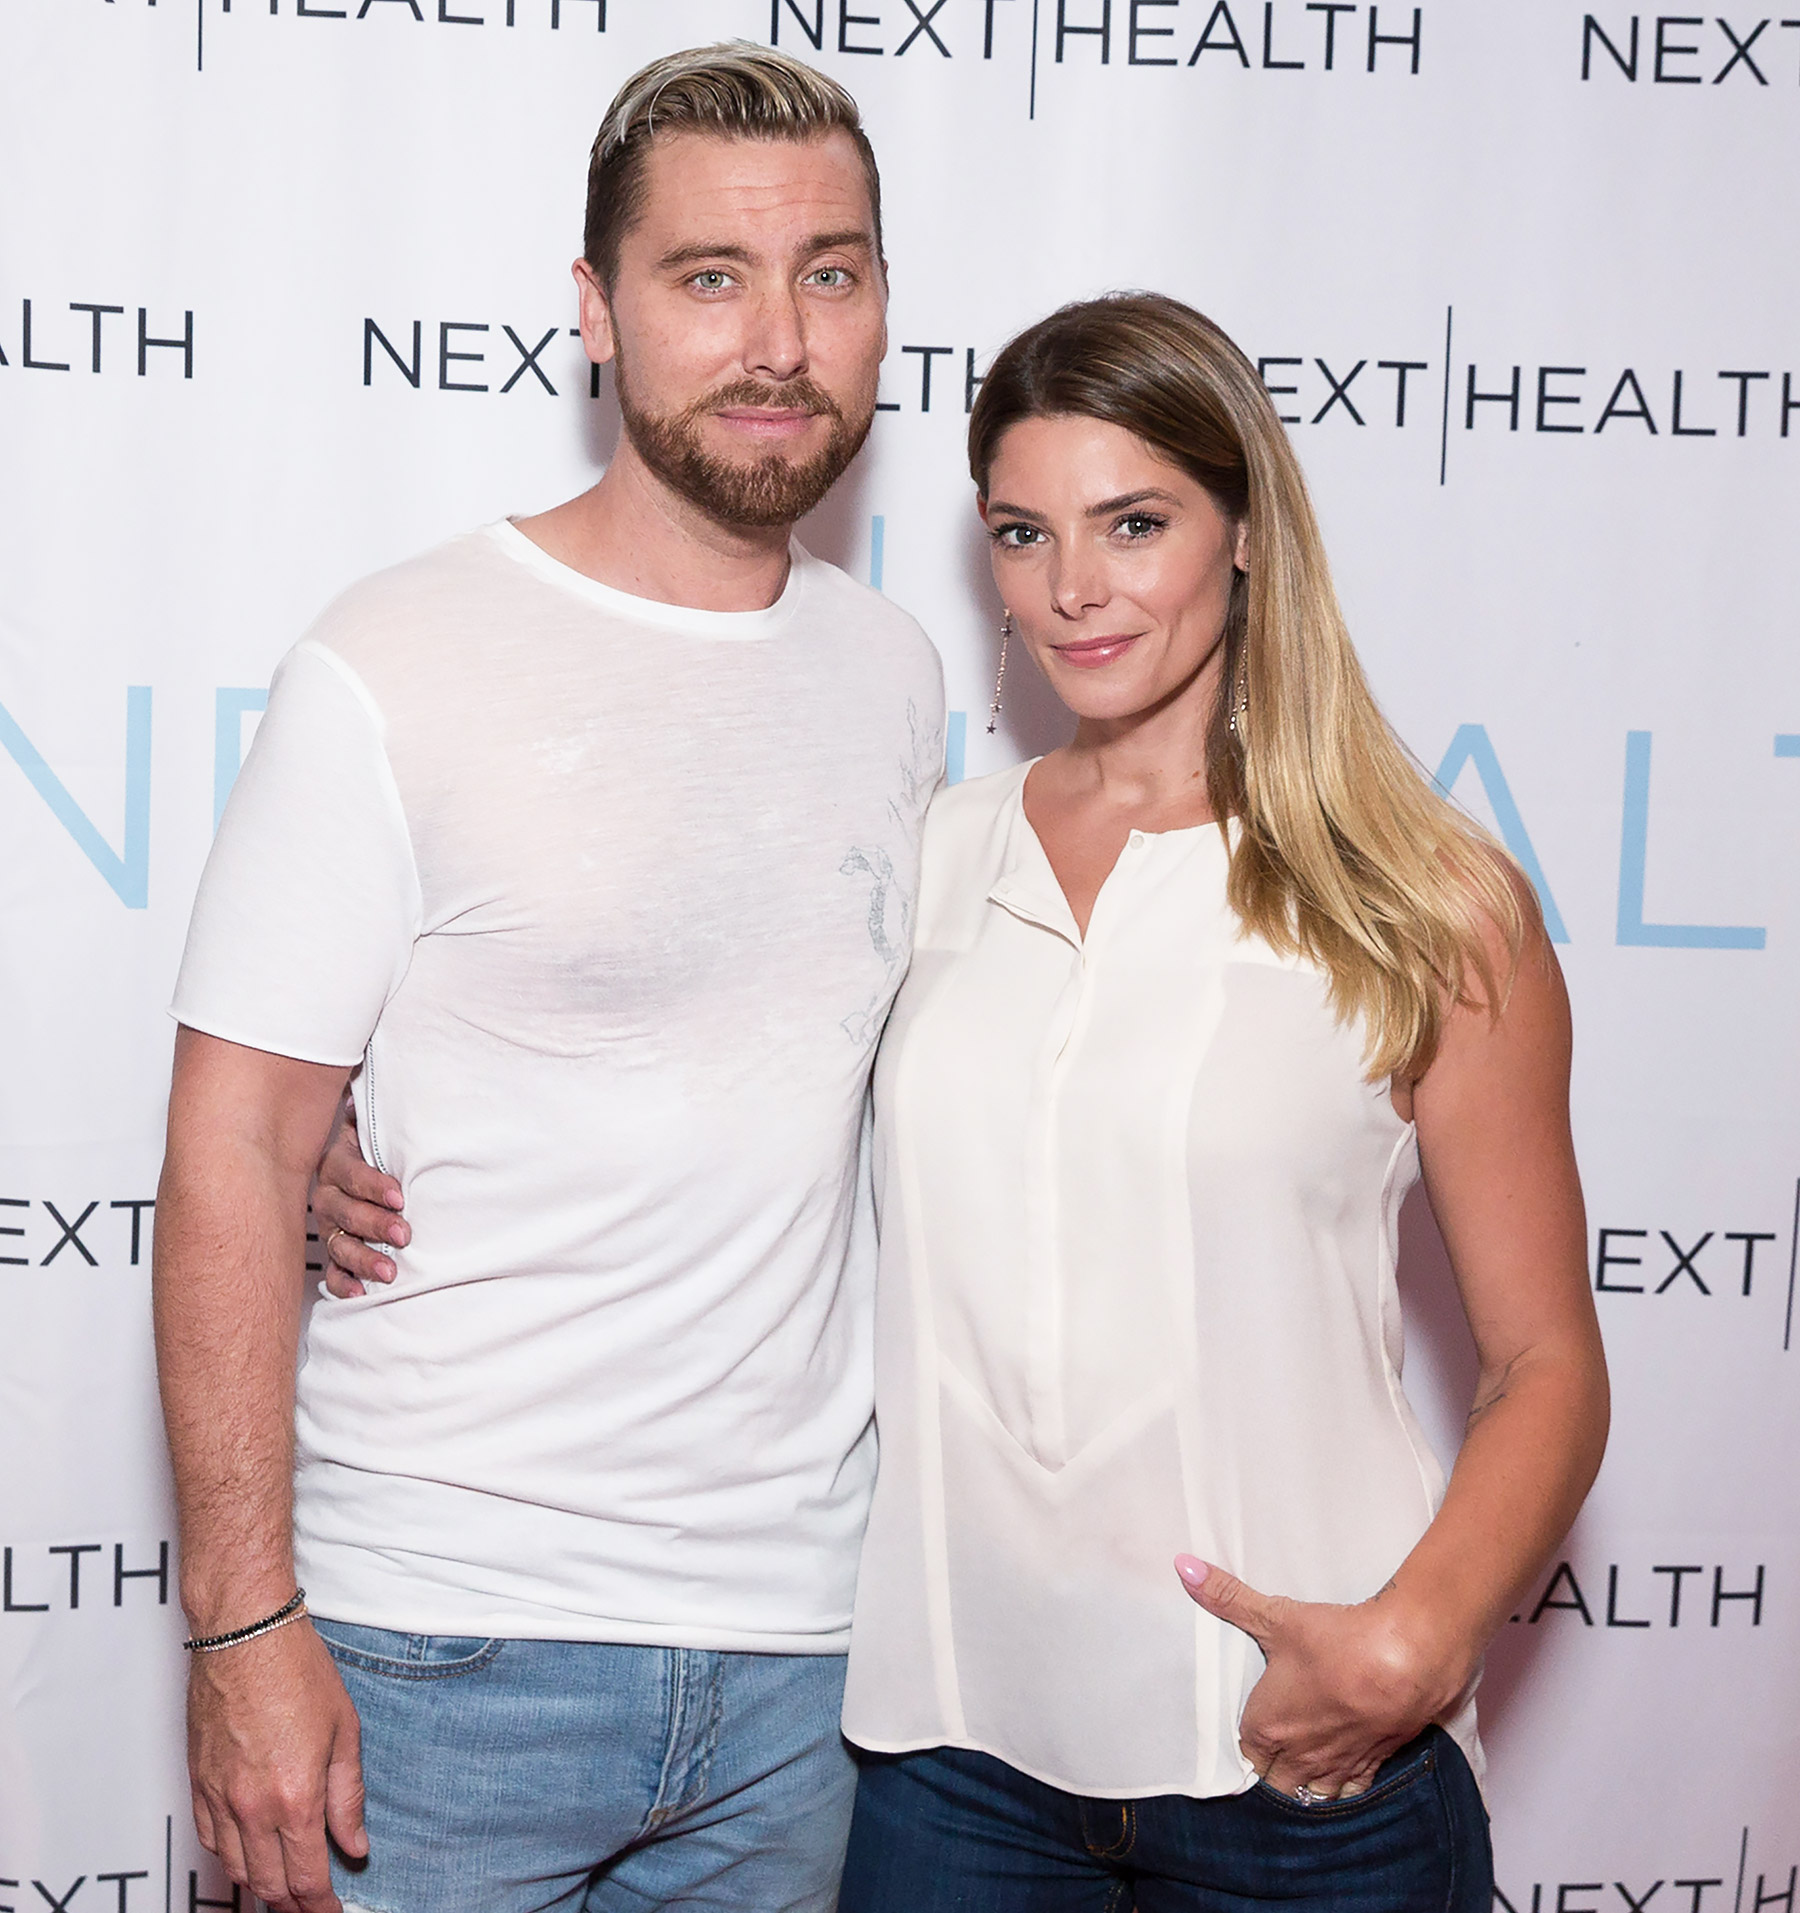 Next Health Grand Opening at the Westfield, Century City